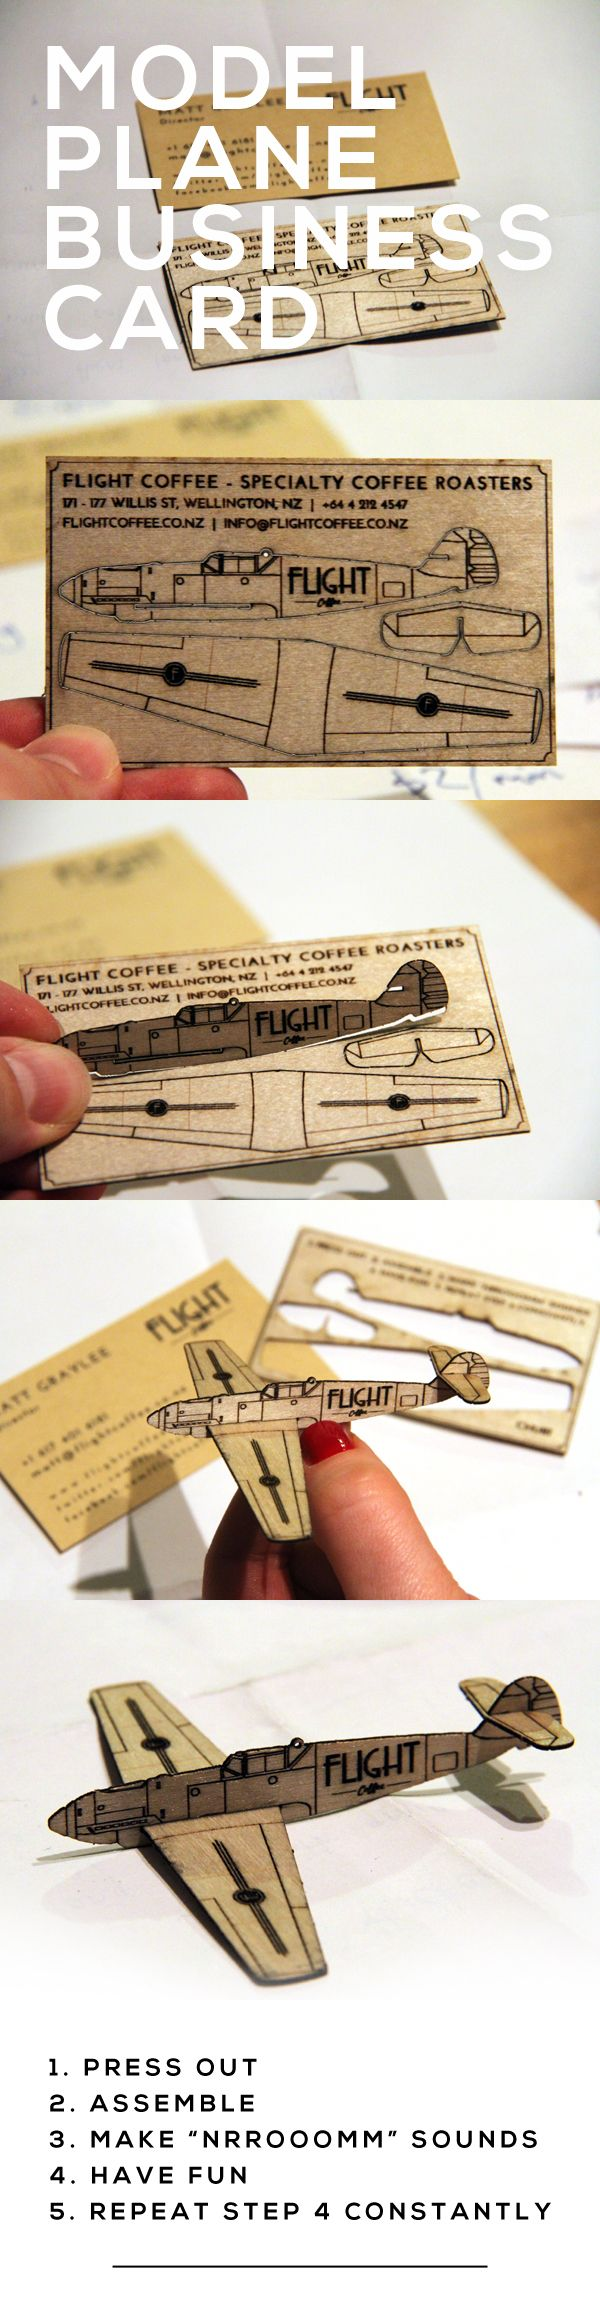 "Flight Coffee's new business cards are a little model planes! Laser cut wood 0.9mm plywood, with instructions that call for you to:  1. Press out  2. Assemble  3. Make ""nrrooomm"" sounds  4. Have fun  5. Repeat step 4 constantly! 